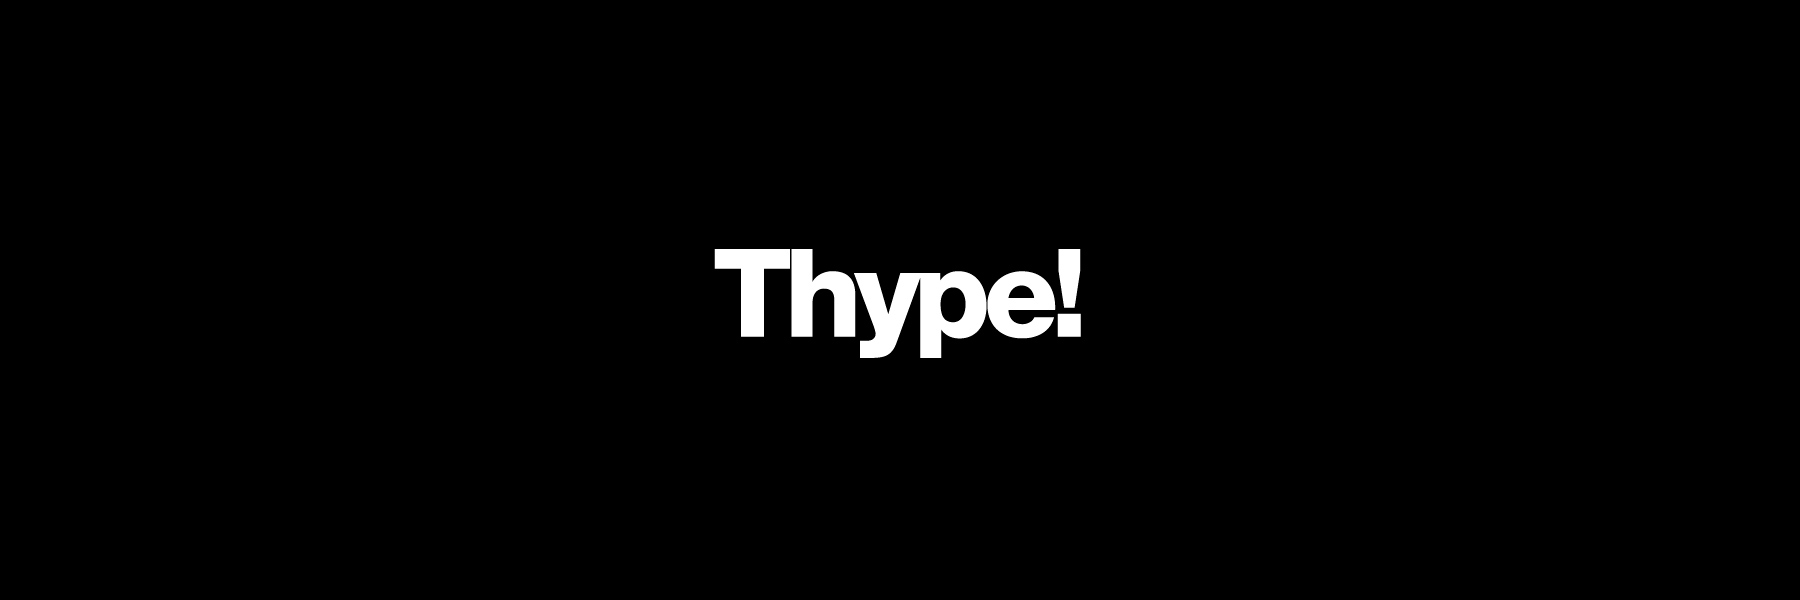 Thype! Logo design exercises book